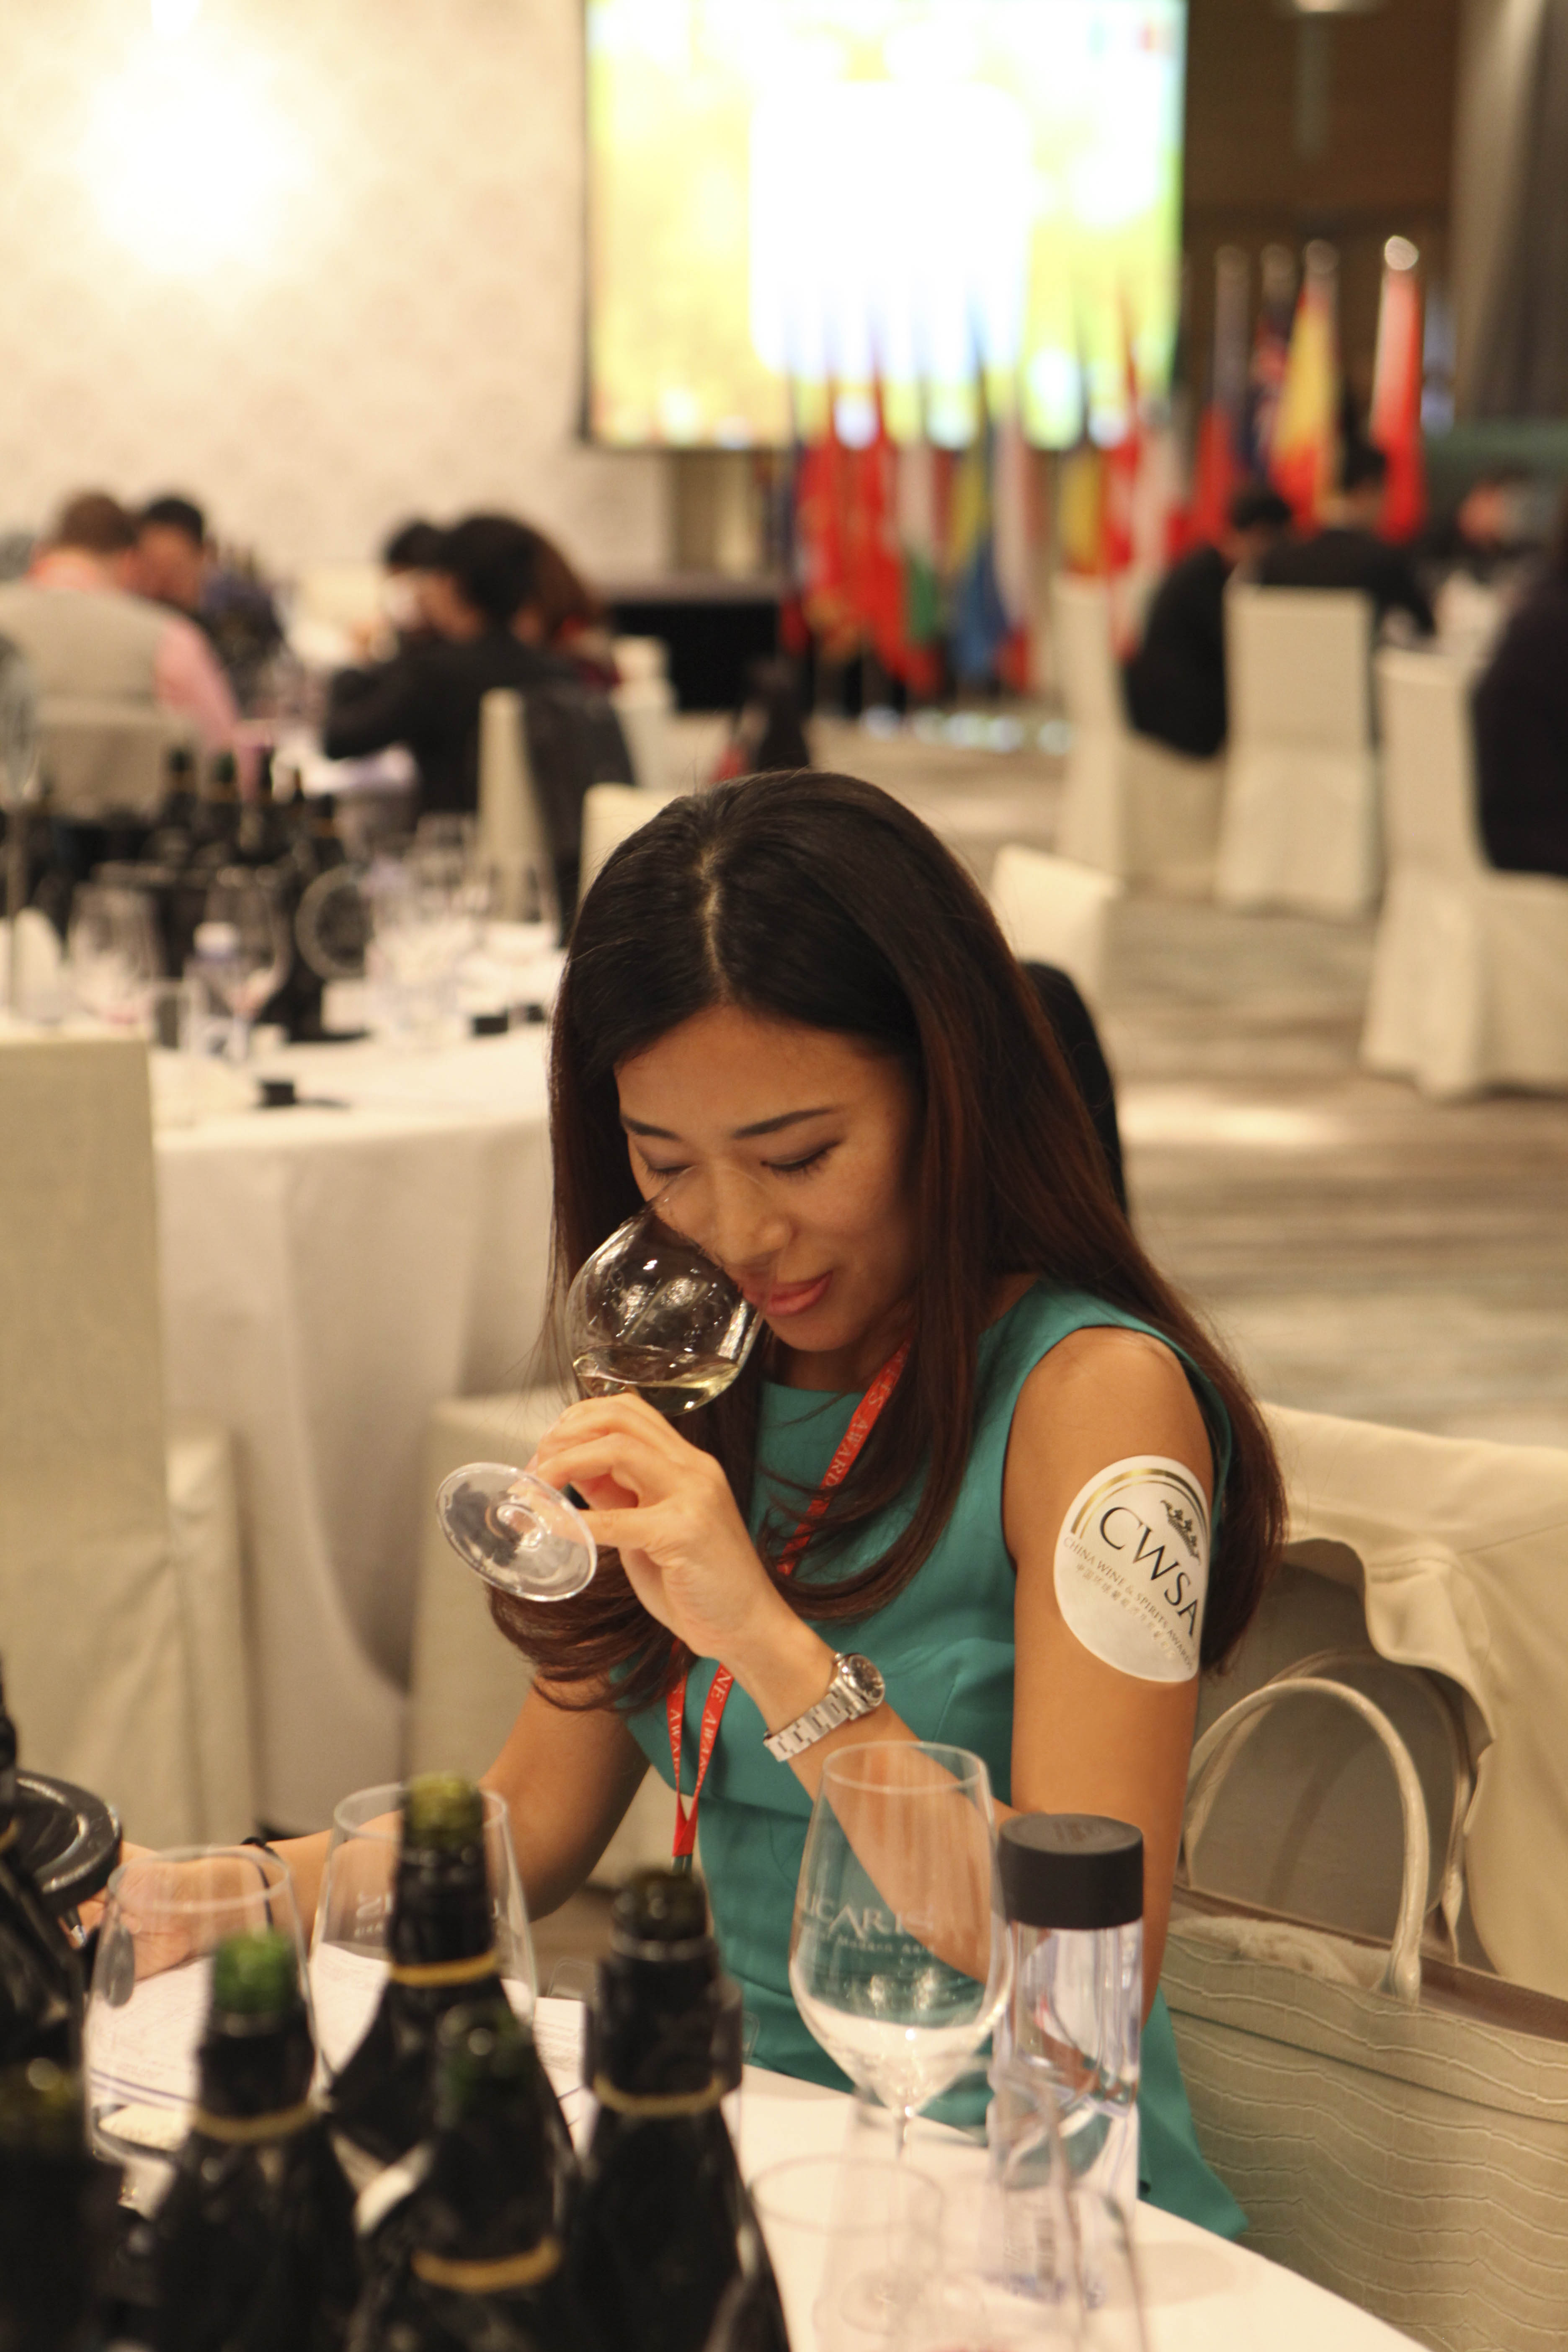 The China Wine and Spirits Awards 2013 Best Value results are out